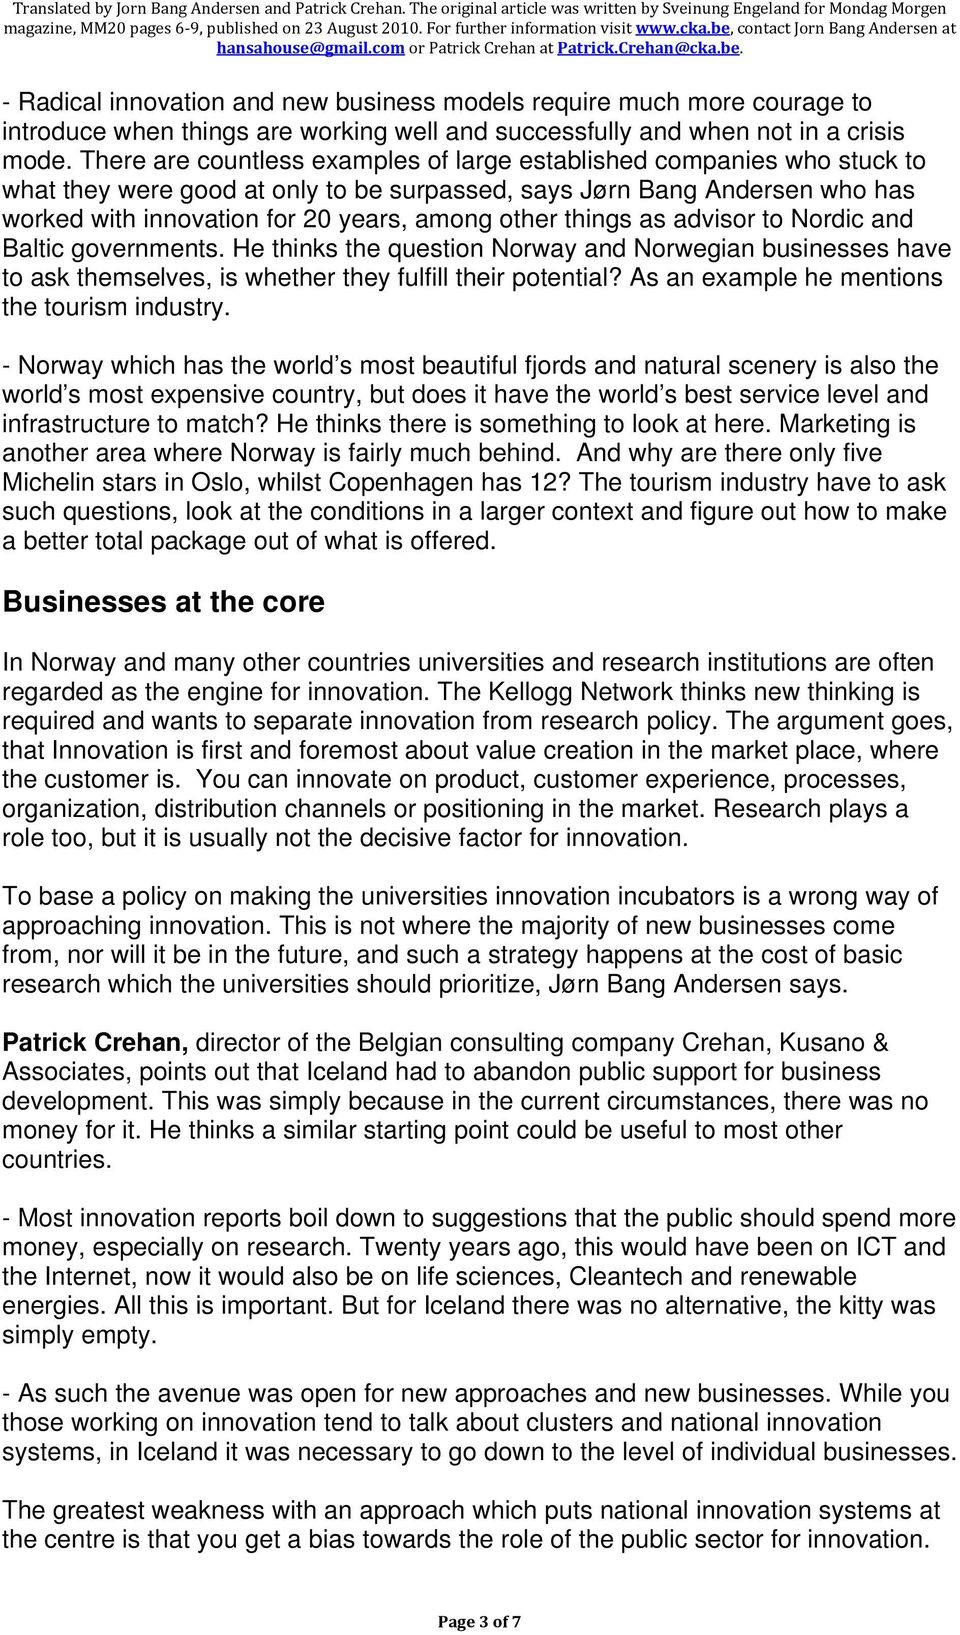 things as advisor to Nordic and Baltic governments. He thinks the question Norway and Norwegian businesses have to ask themselves, is whether they fulfill their potential?